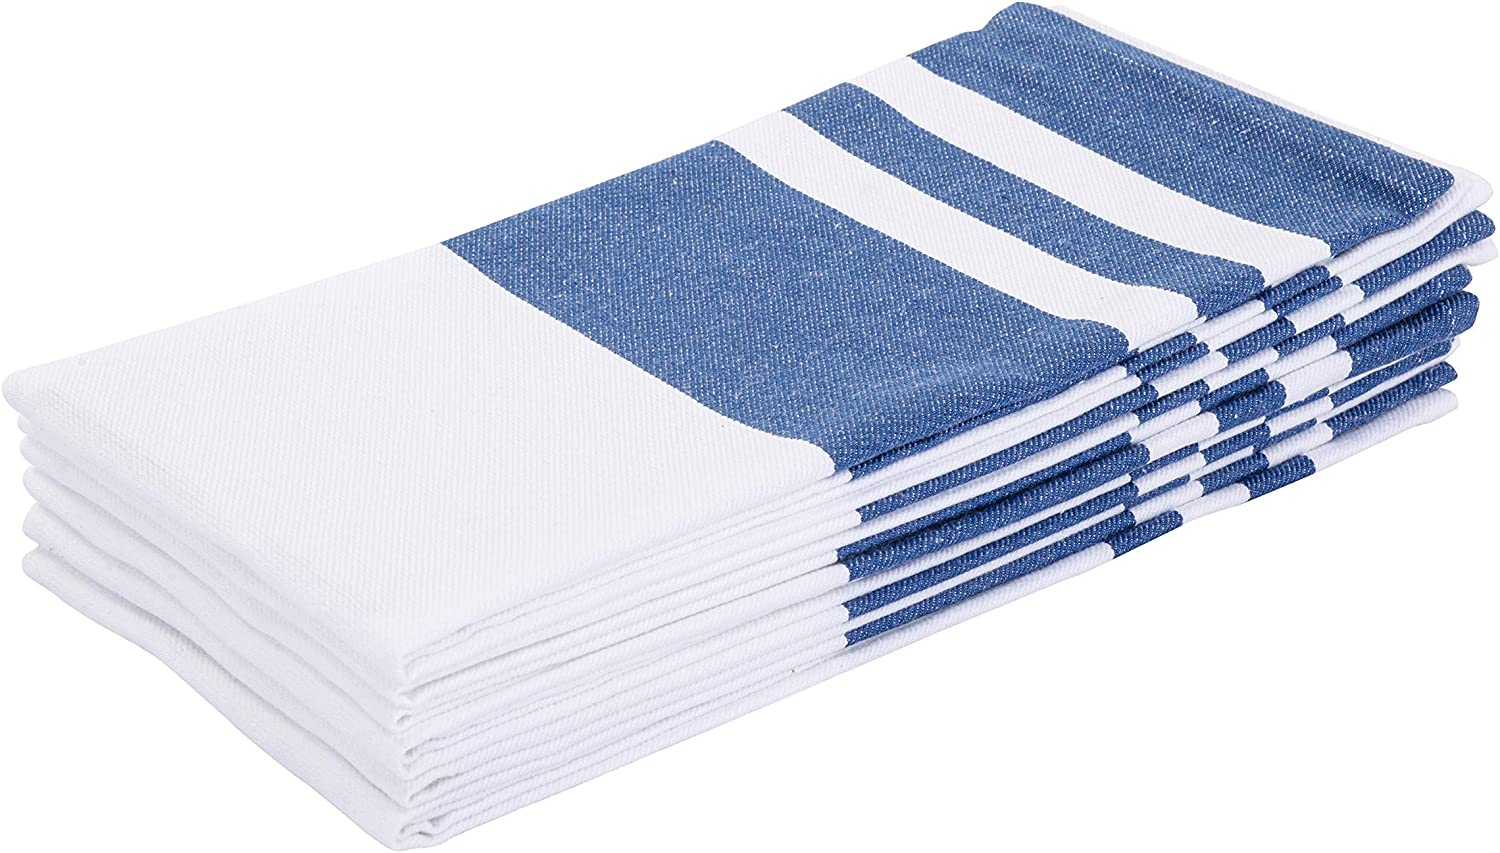 DG Sale Collections Kitchen Dish Super special price Towels Cotton Set Natural of 100%